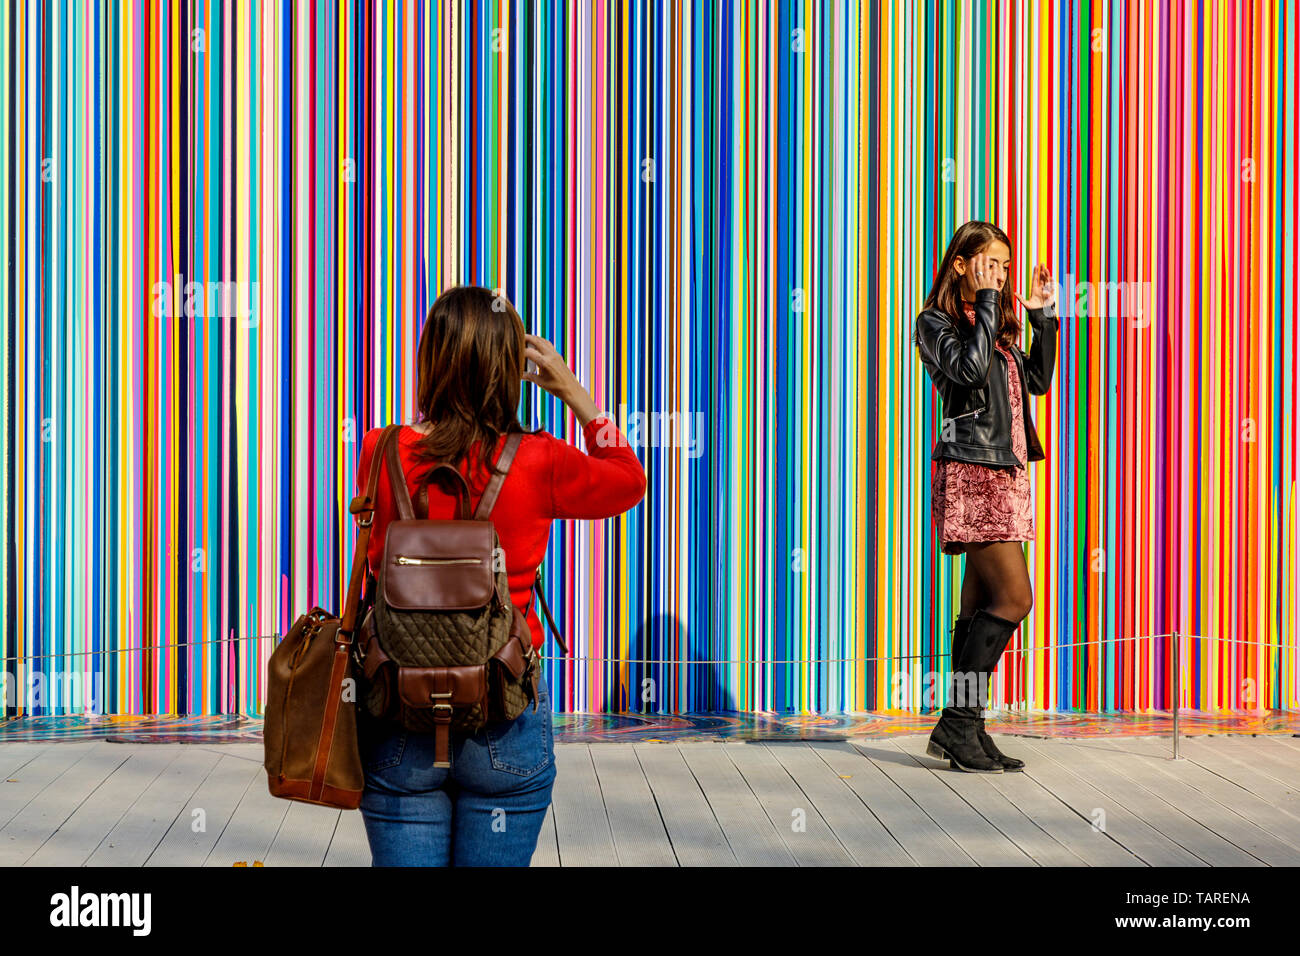 A young tourist poses for a photo in front the art installation Giardini Colourfall by artist Ian Davenport at the 2017 Venice Biennale, Venice Italy. - Stock Image